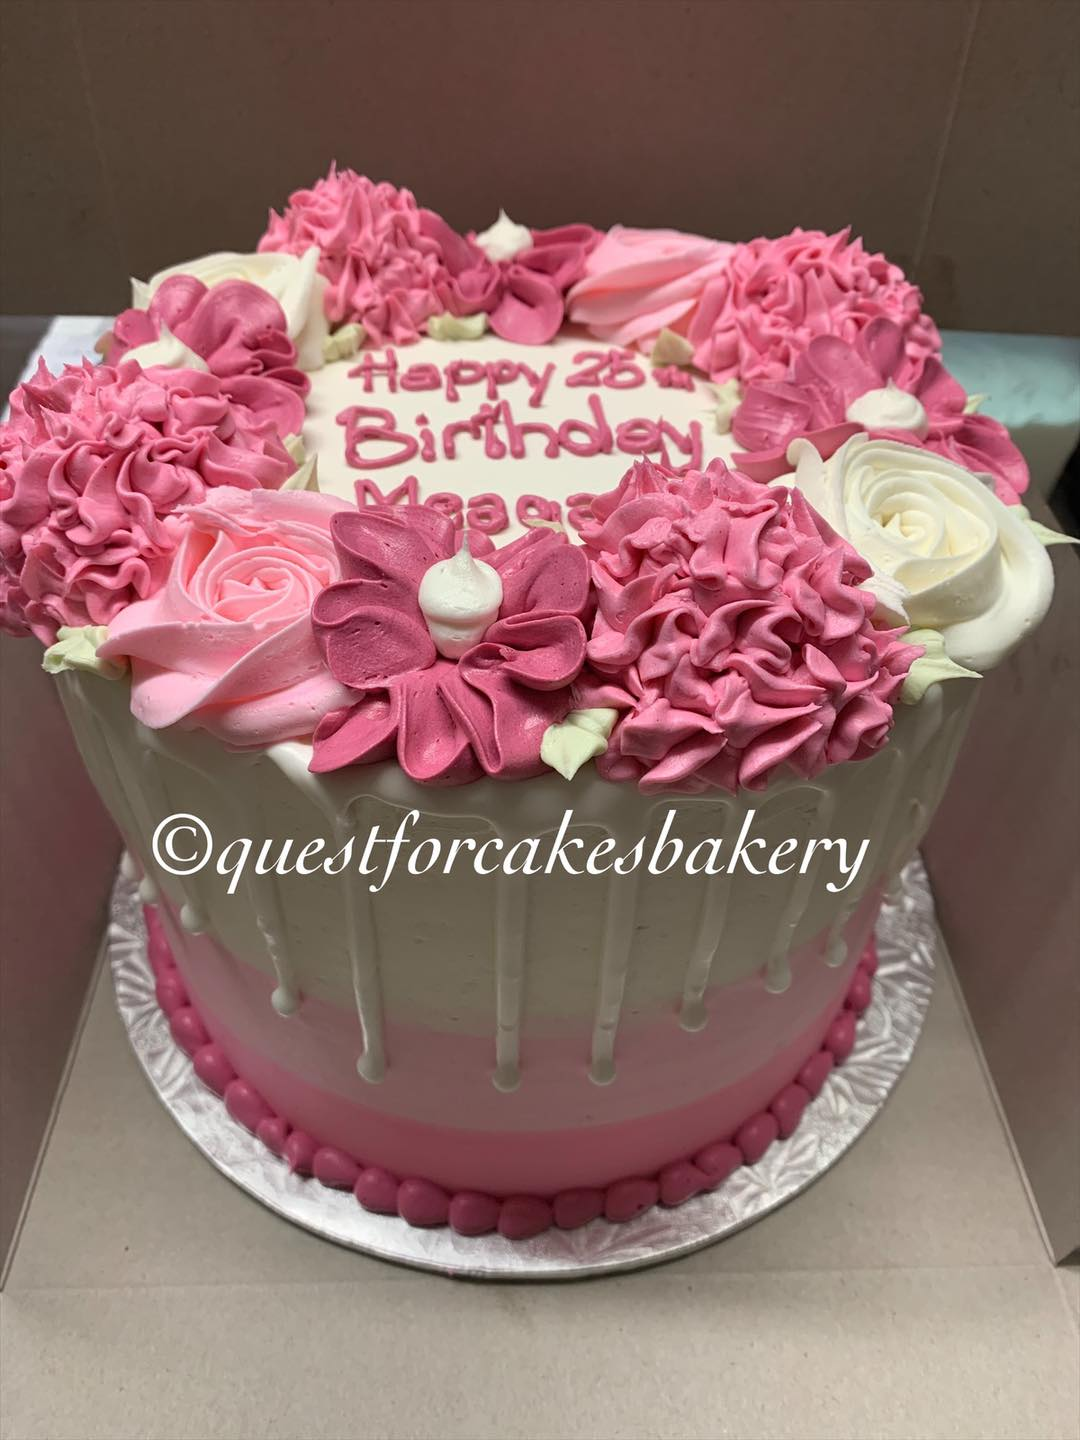 Quest for Cakes Bakery